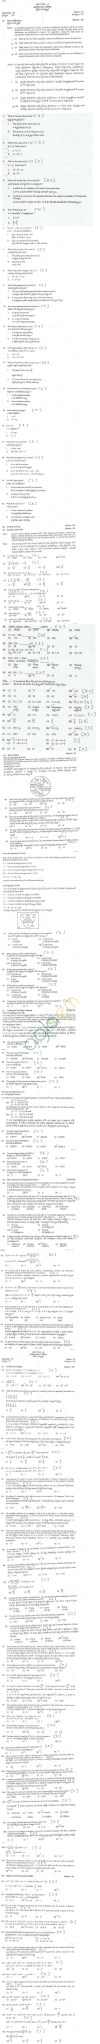 ICET 2011 Question Papers with Answers